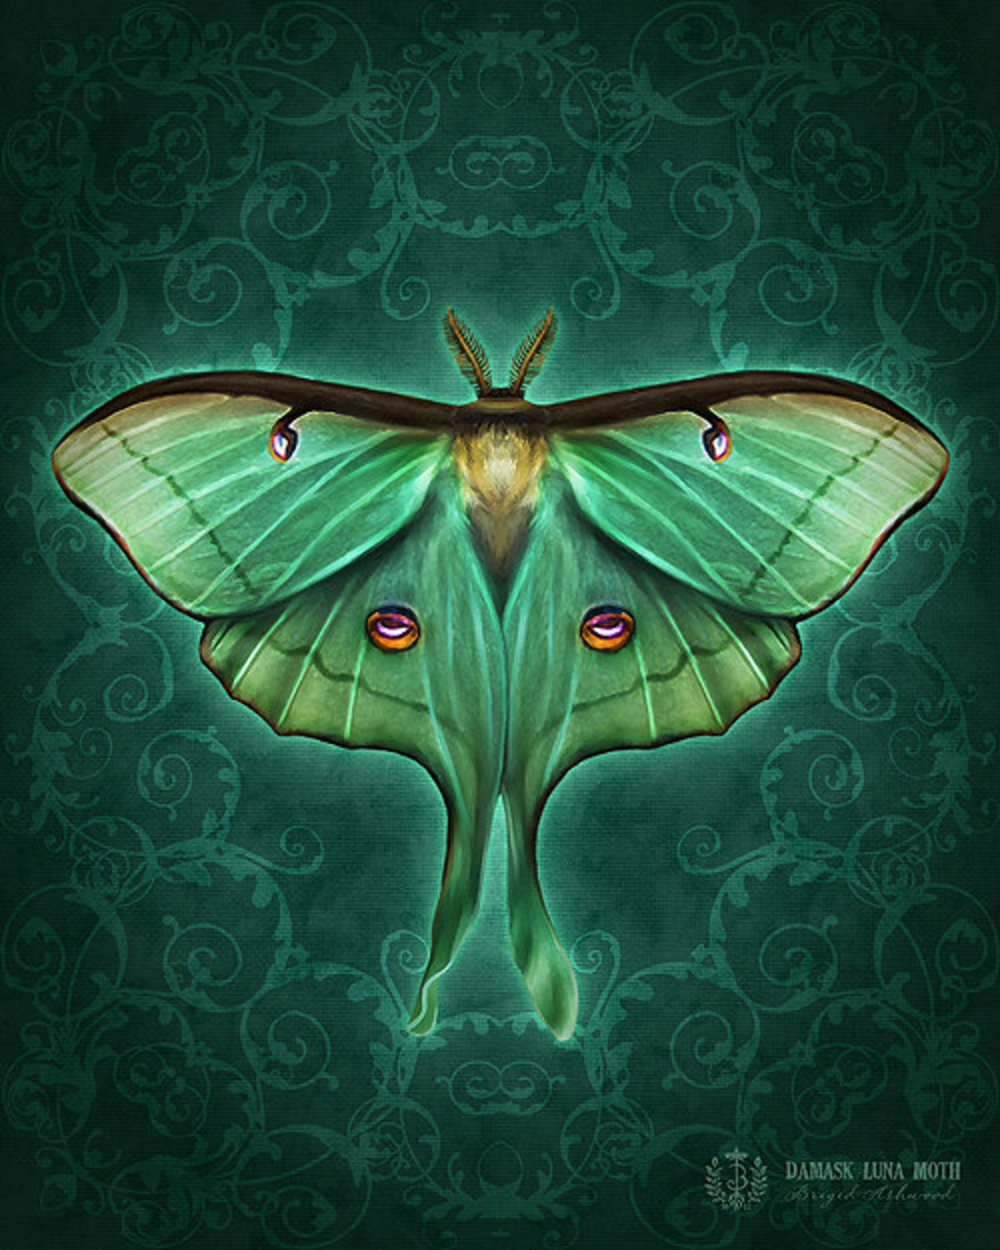 Damask Luna Moth